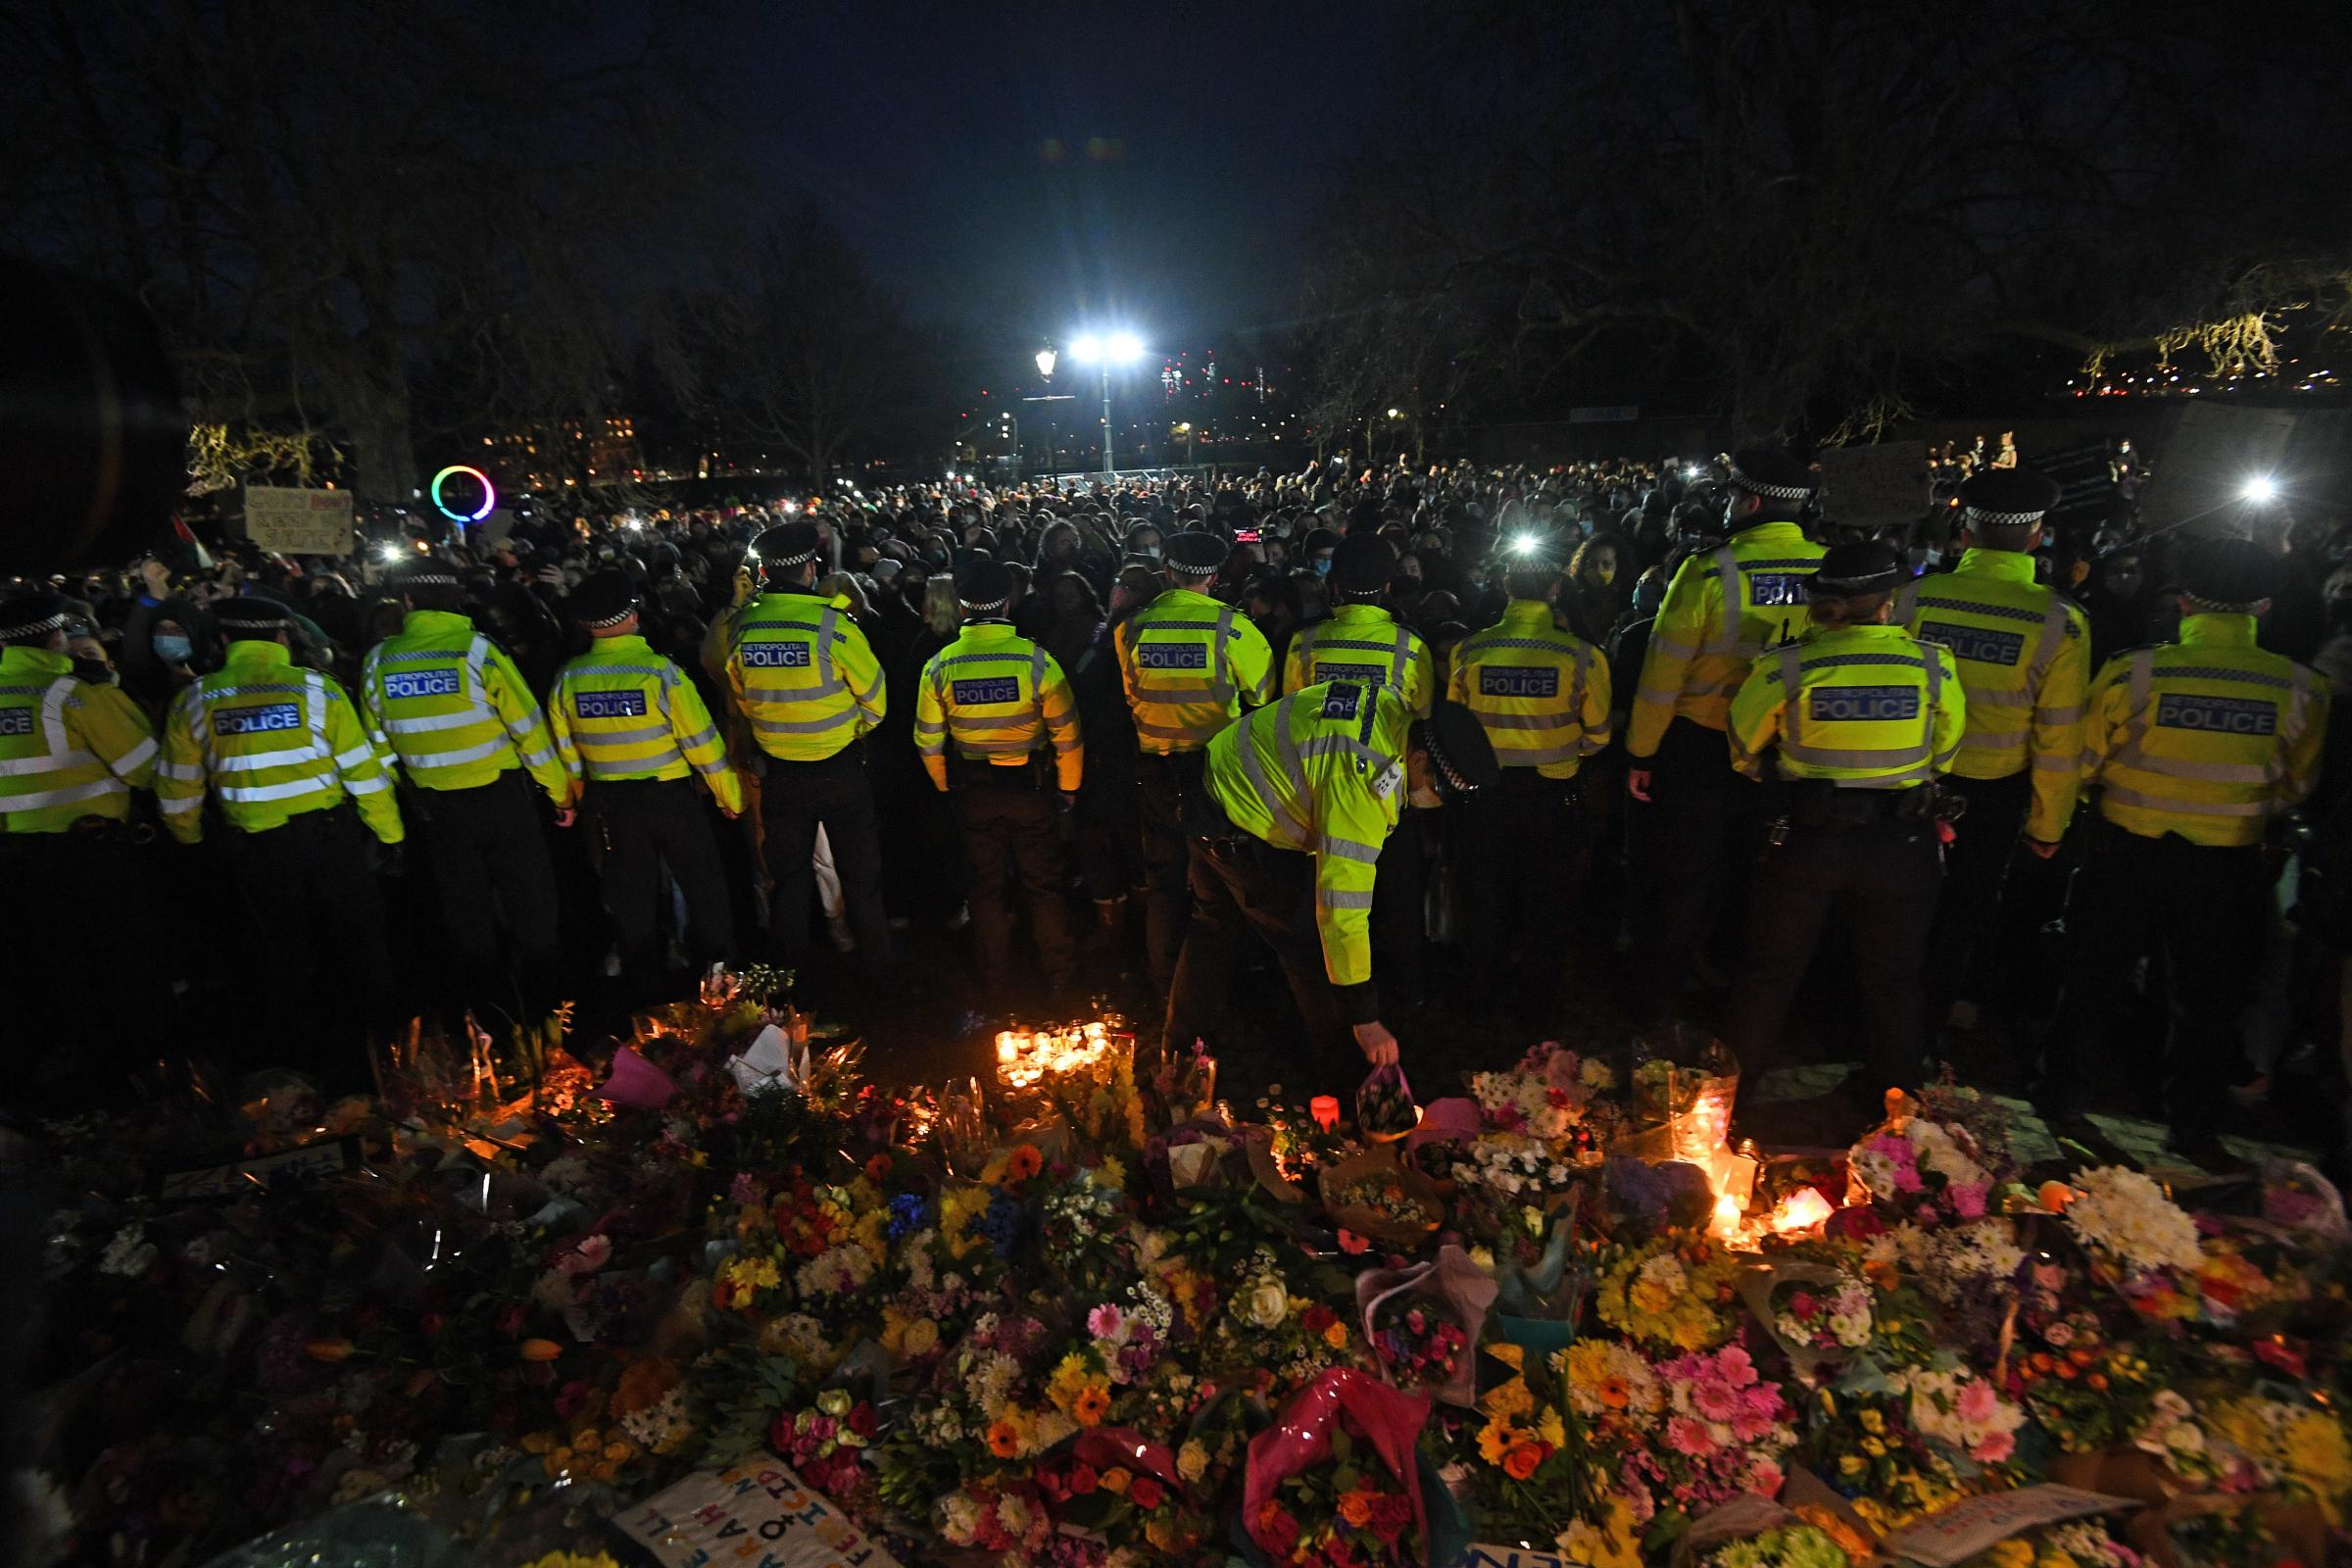 The Met was criticised for the way it handled the vigil on March 13. Credit: PA